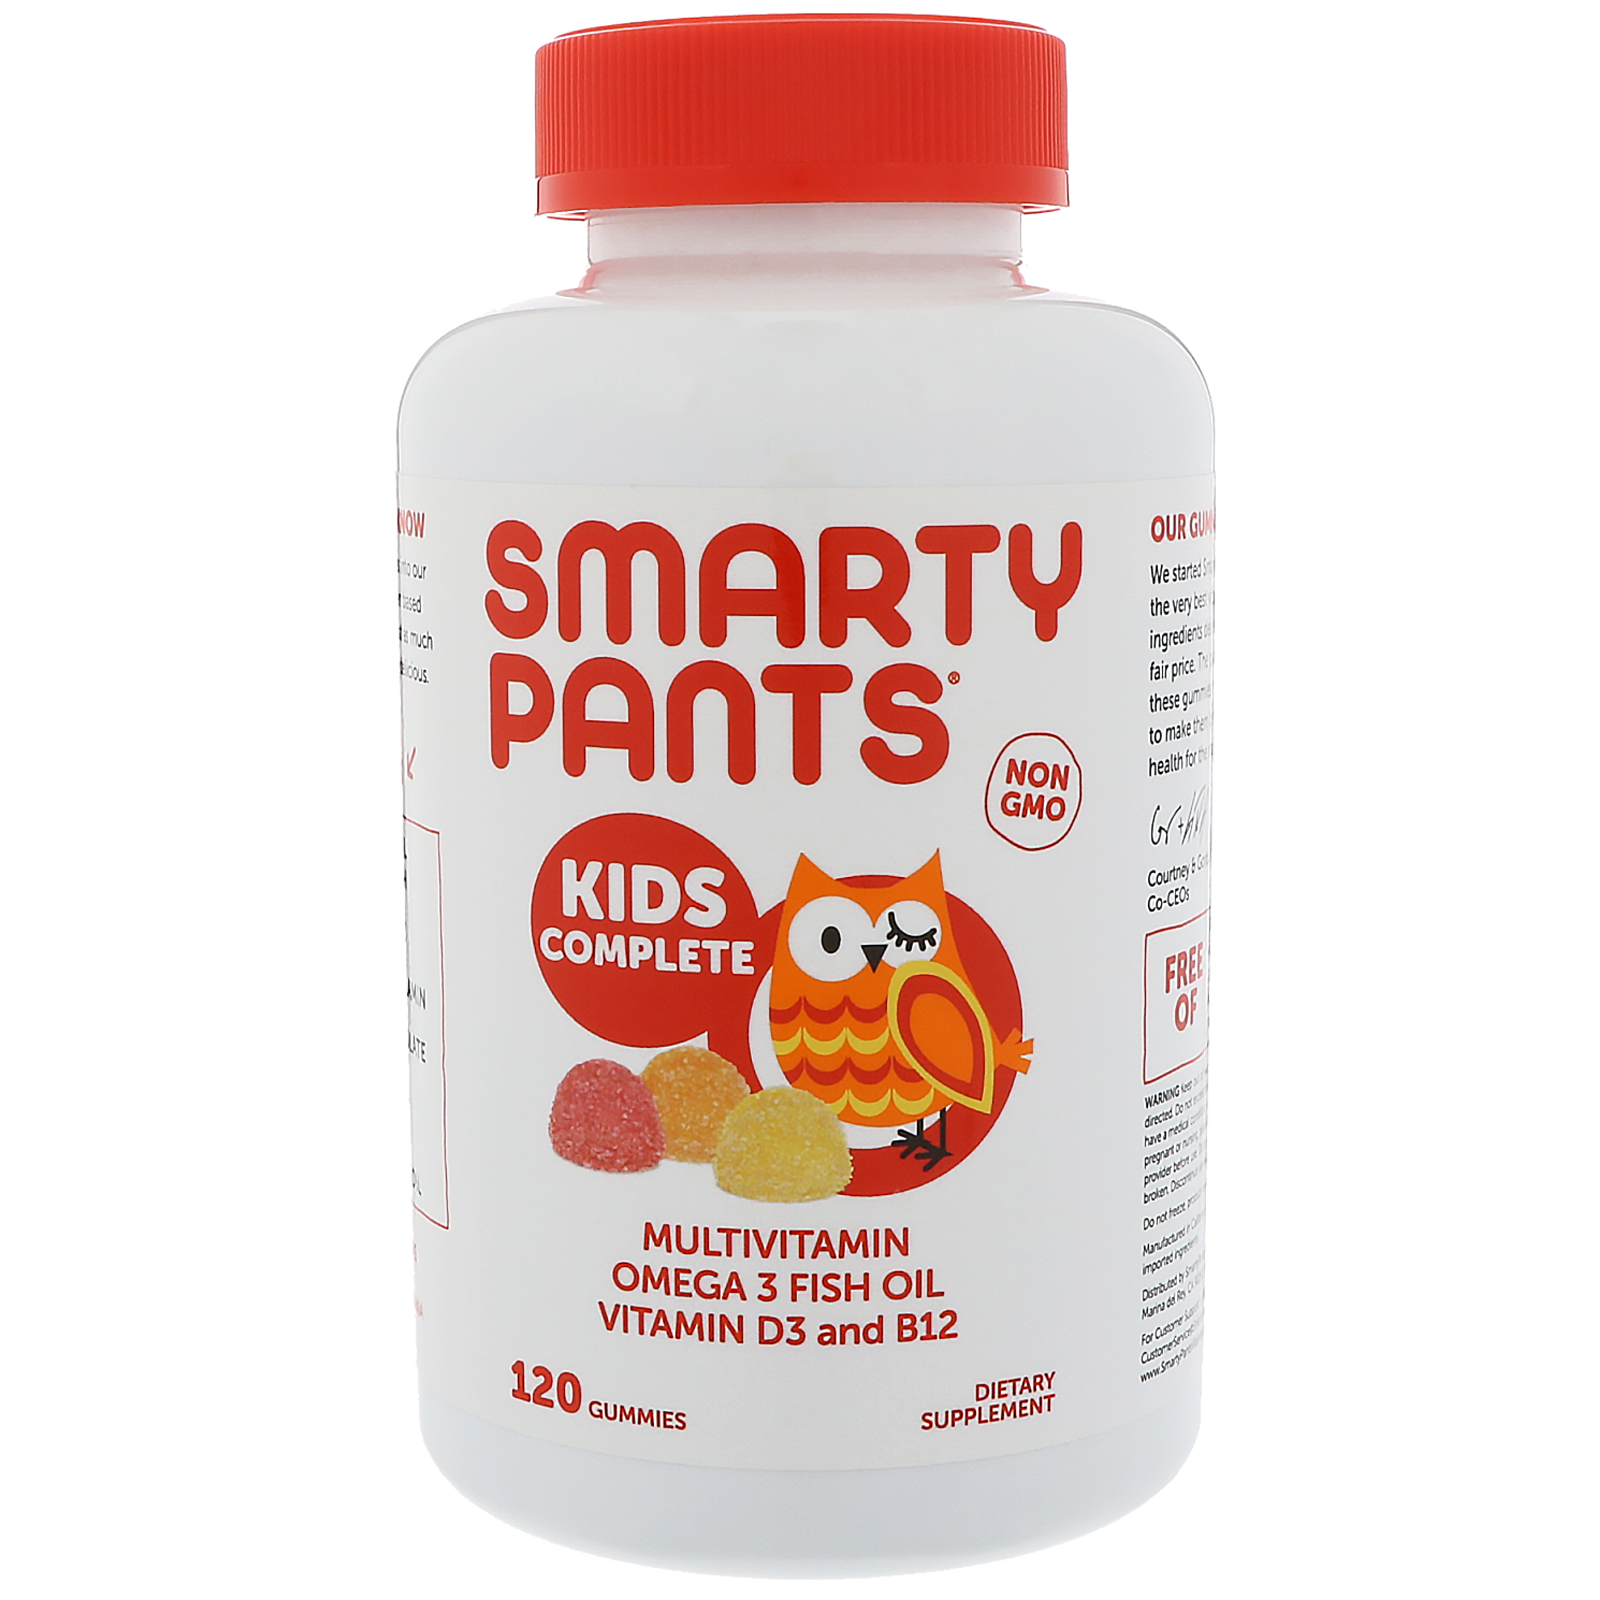 Smartypants kids complete multivitamin omega 3 fish oil for Daily fish oil